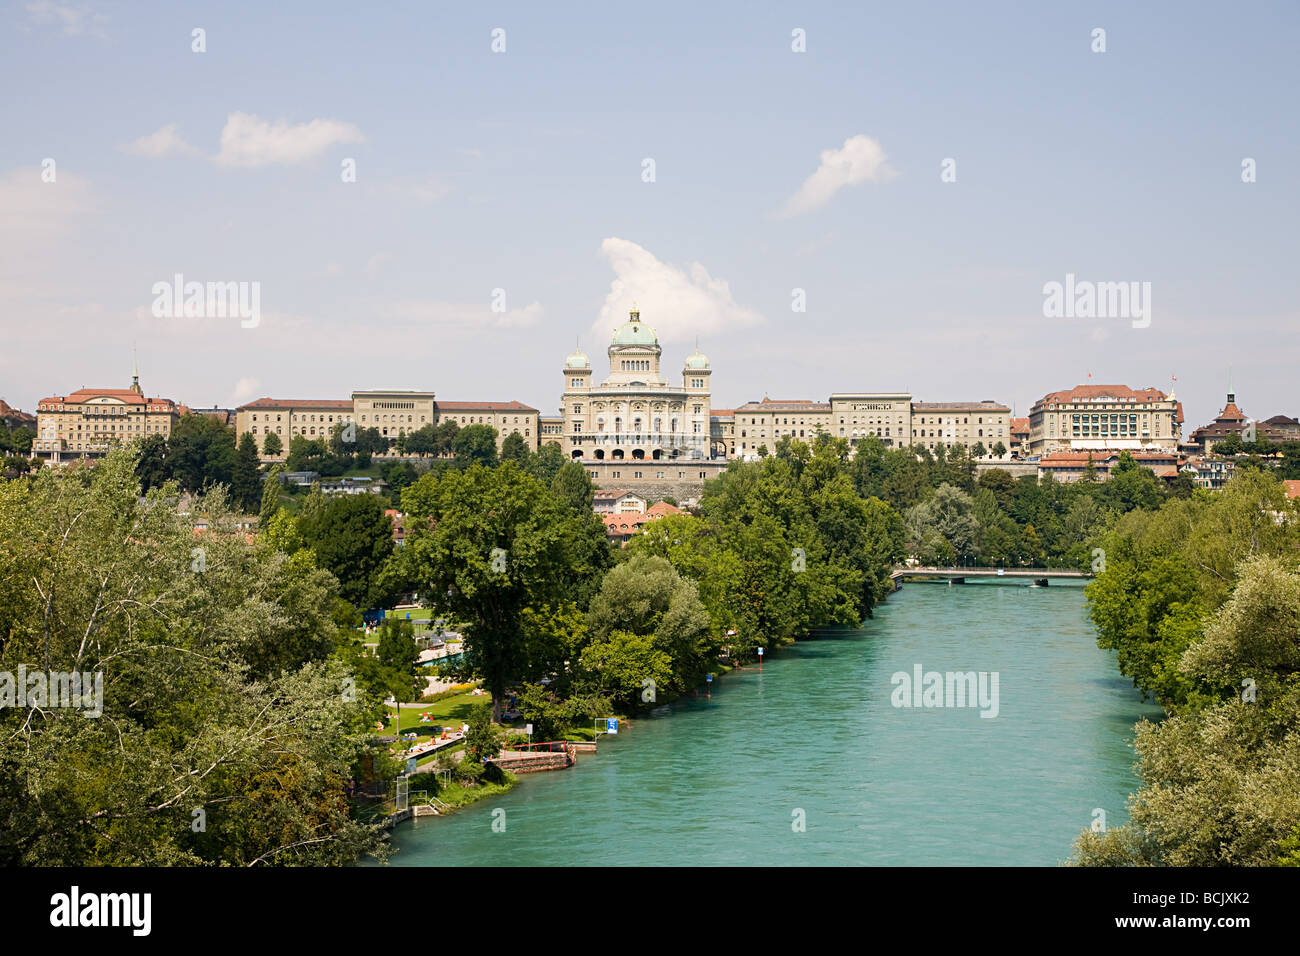 Federal building and river in berne - Stock Image